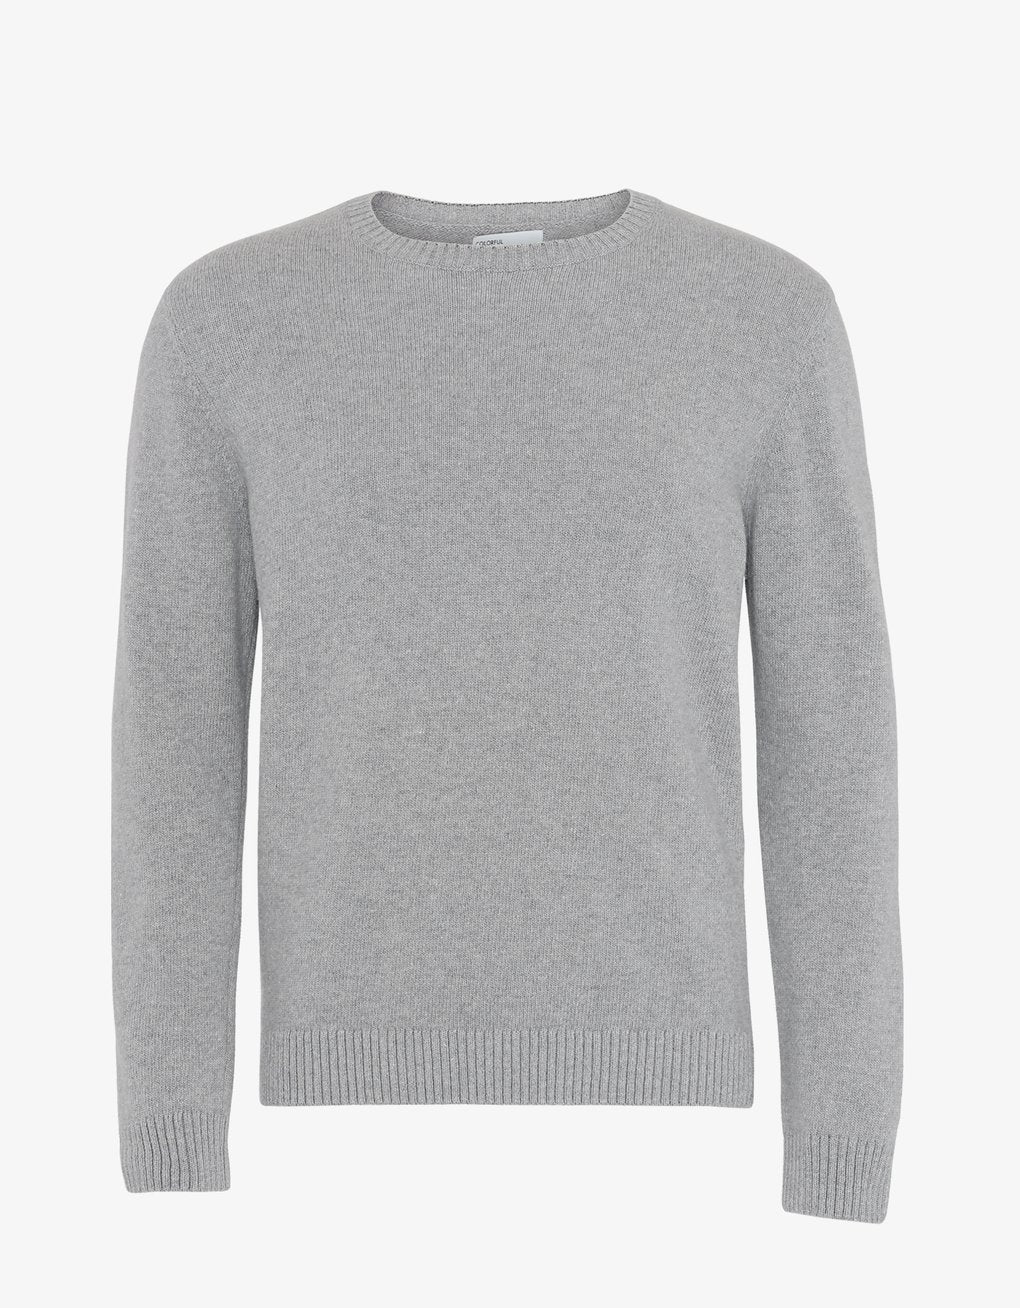 Classic Merino Wool Crew - Heather Grey